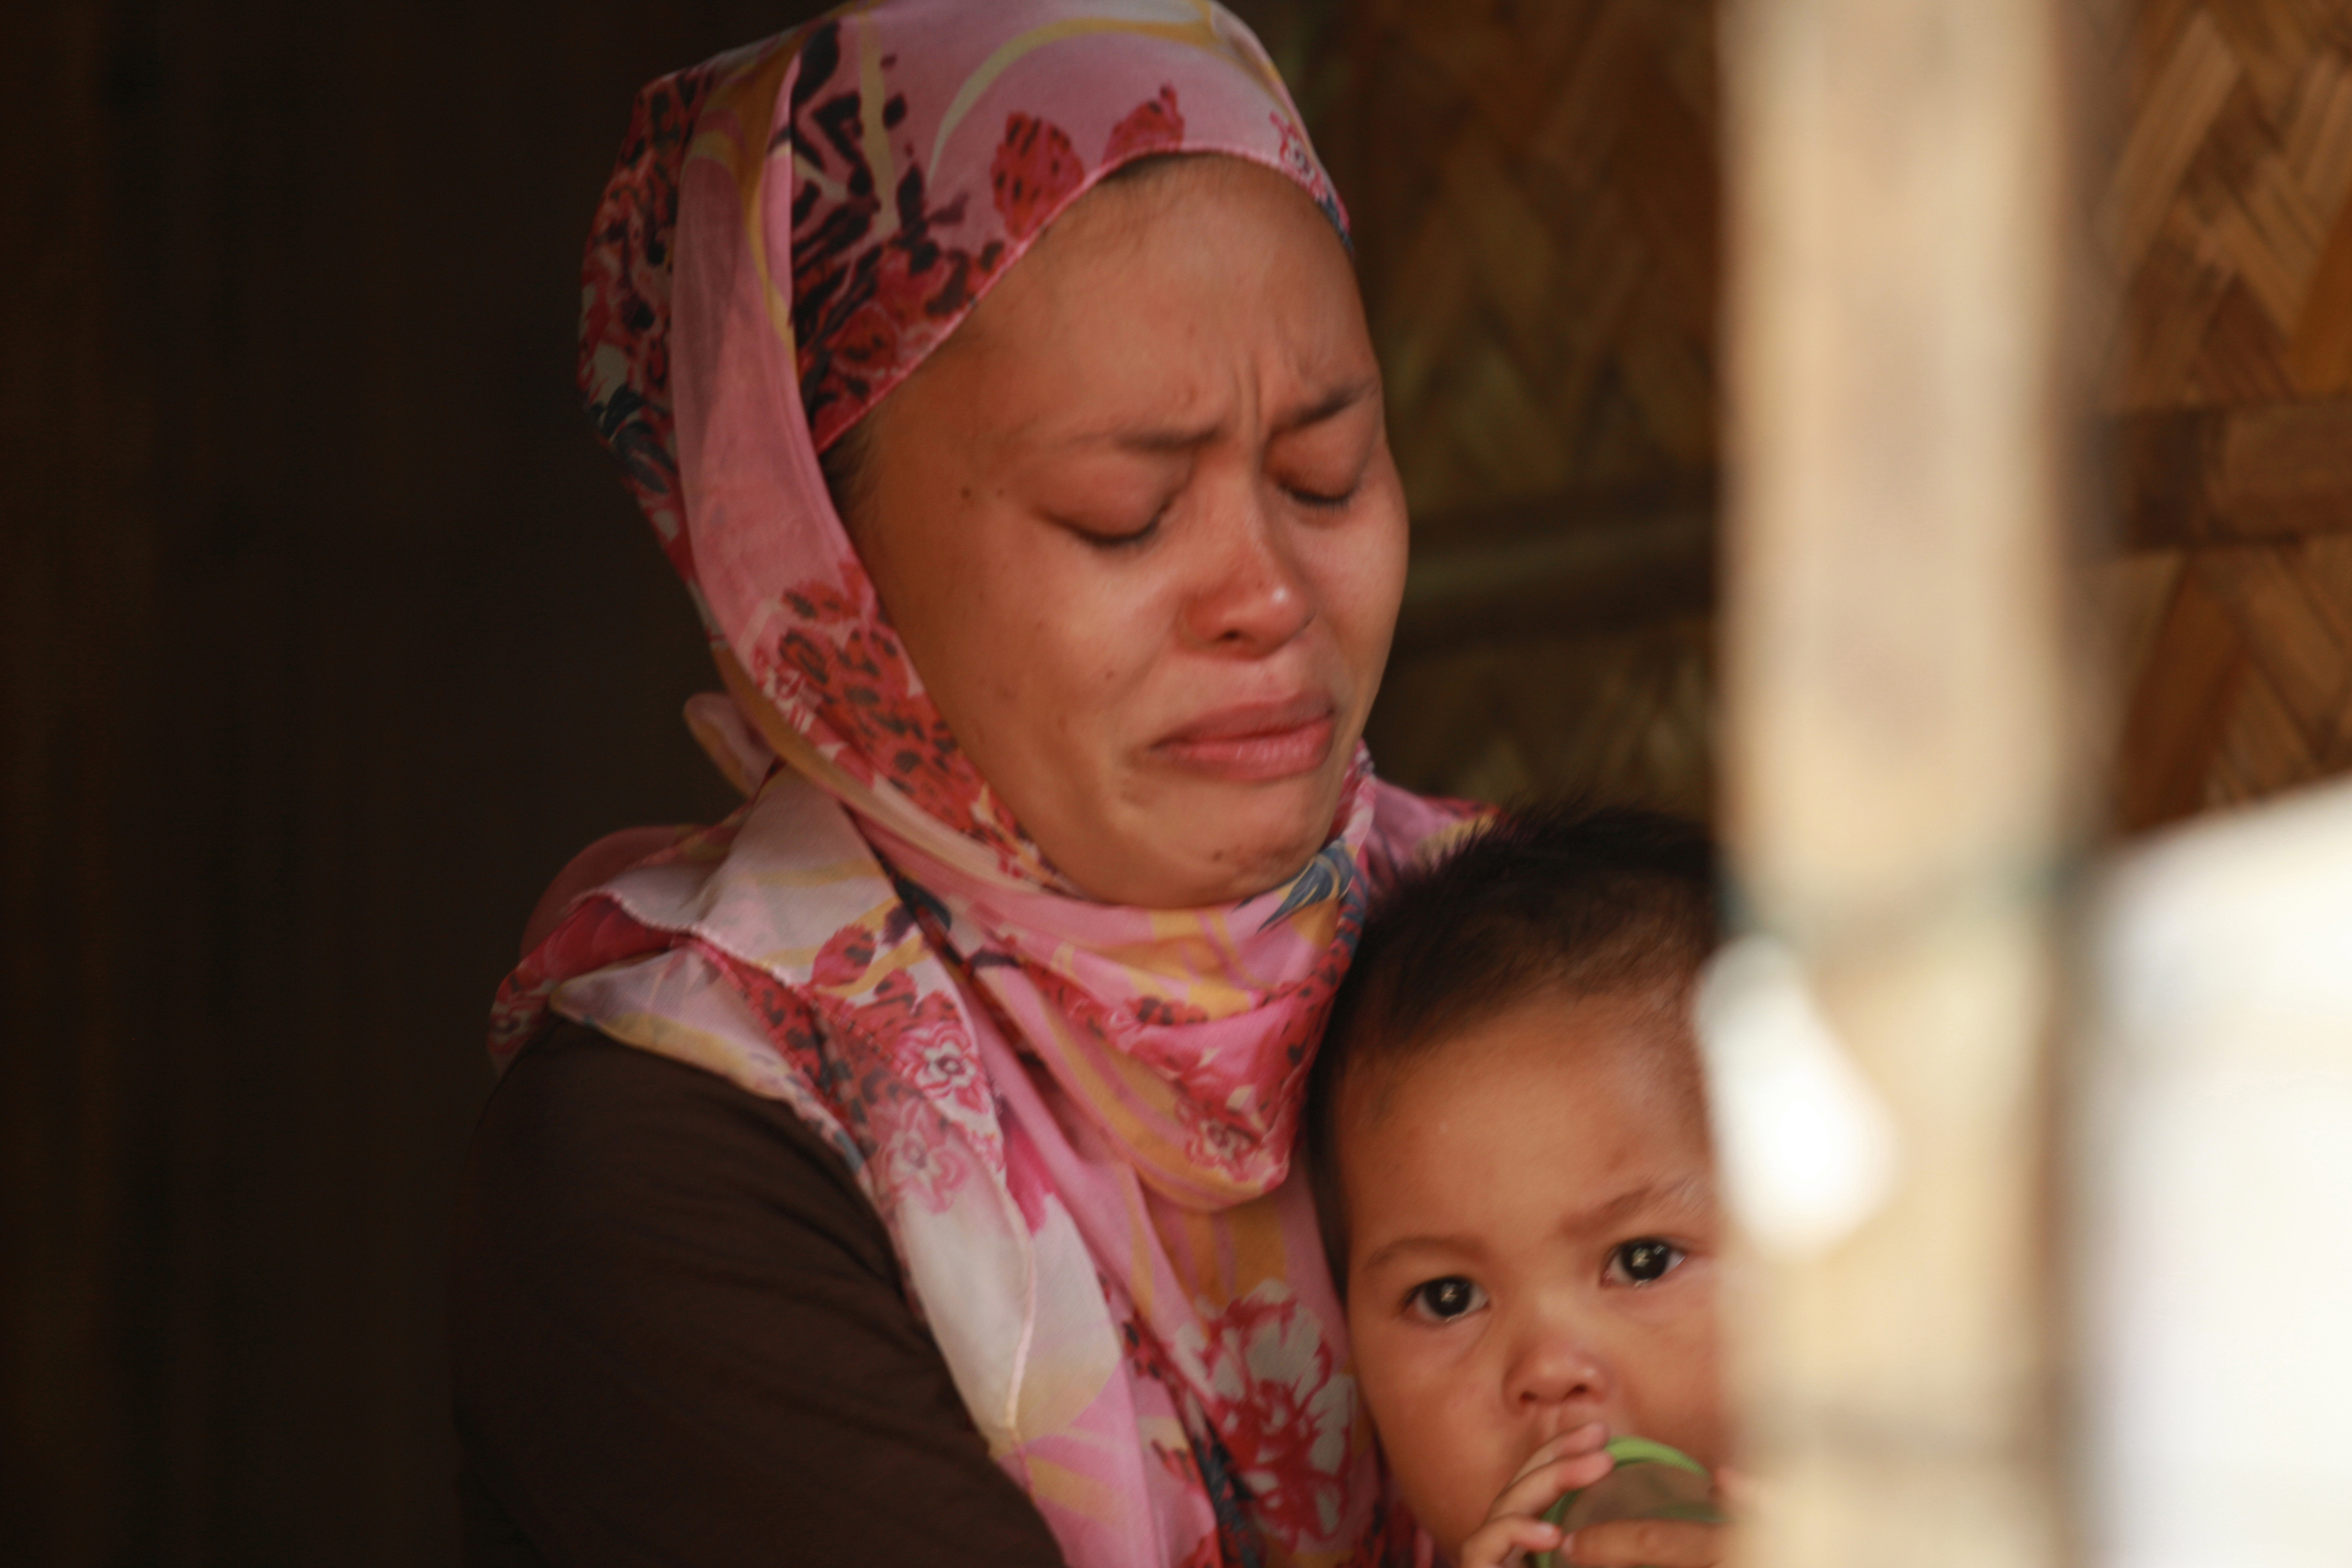 STILL GRIEVING. Fatima Sandigan, 39, cries as she remembers her last moments with her husband, Mamarizah. He was one of the MILF fighters who died on January 25, 2015, leaving behind Fatima and their 3 children.